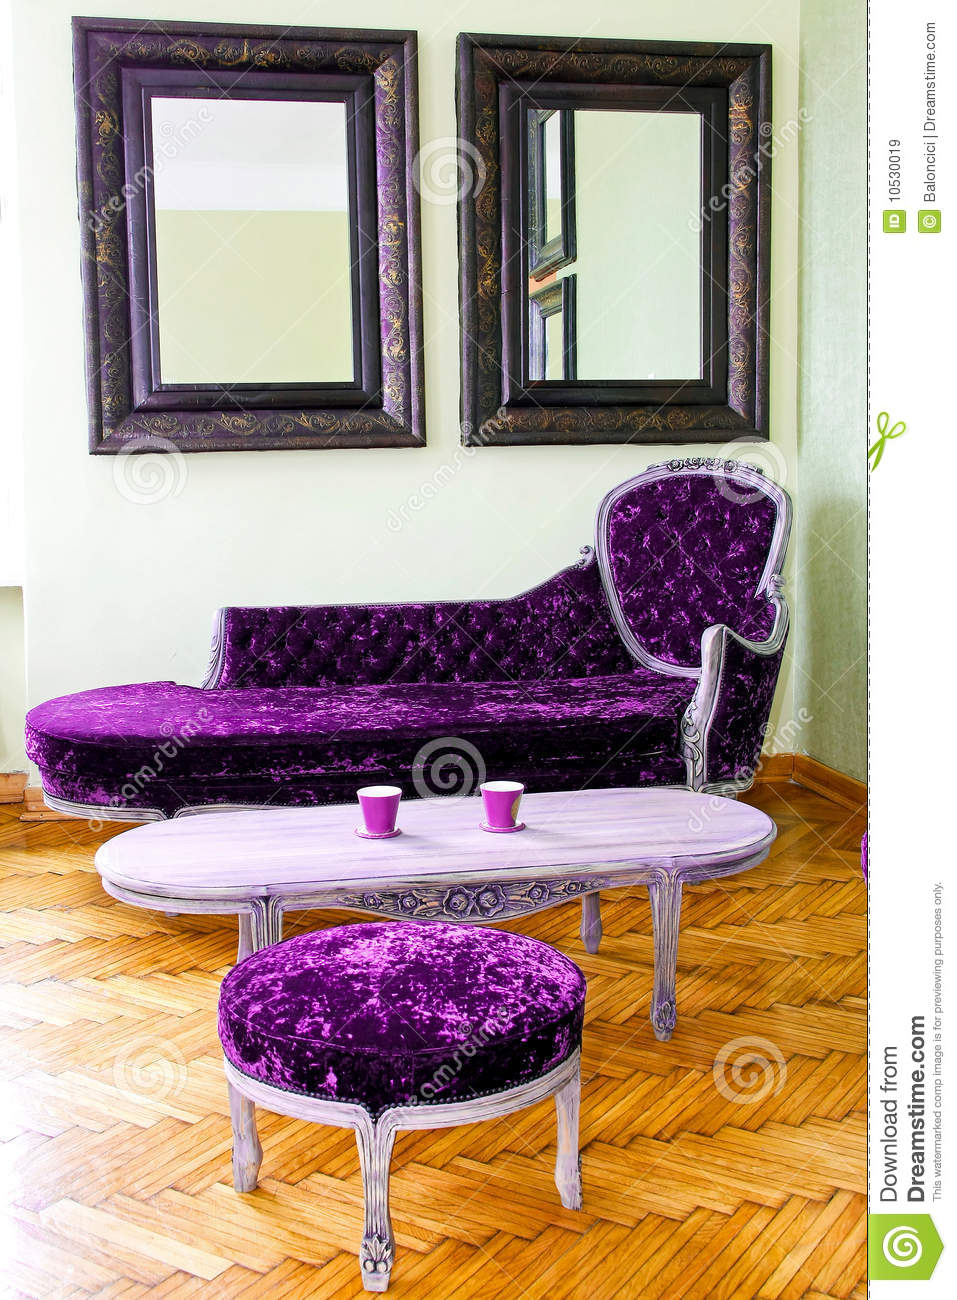 living room prices rug sets purple furniture stock image. image of sofa, table, ...